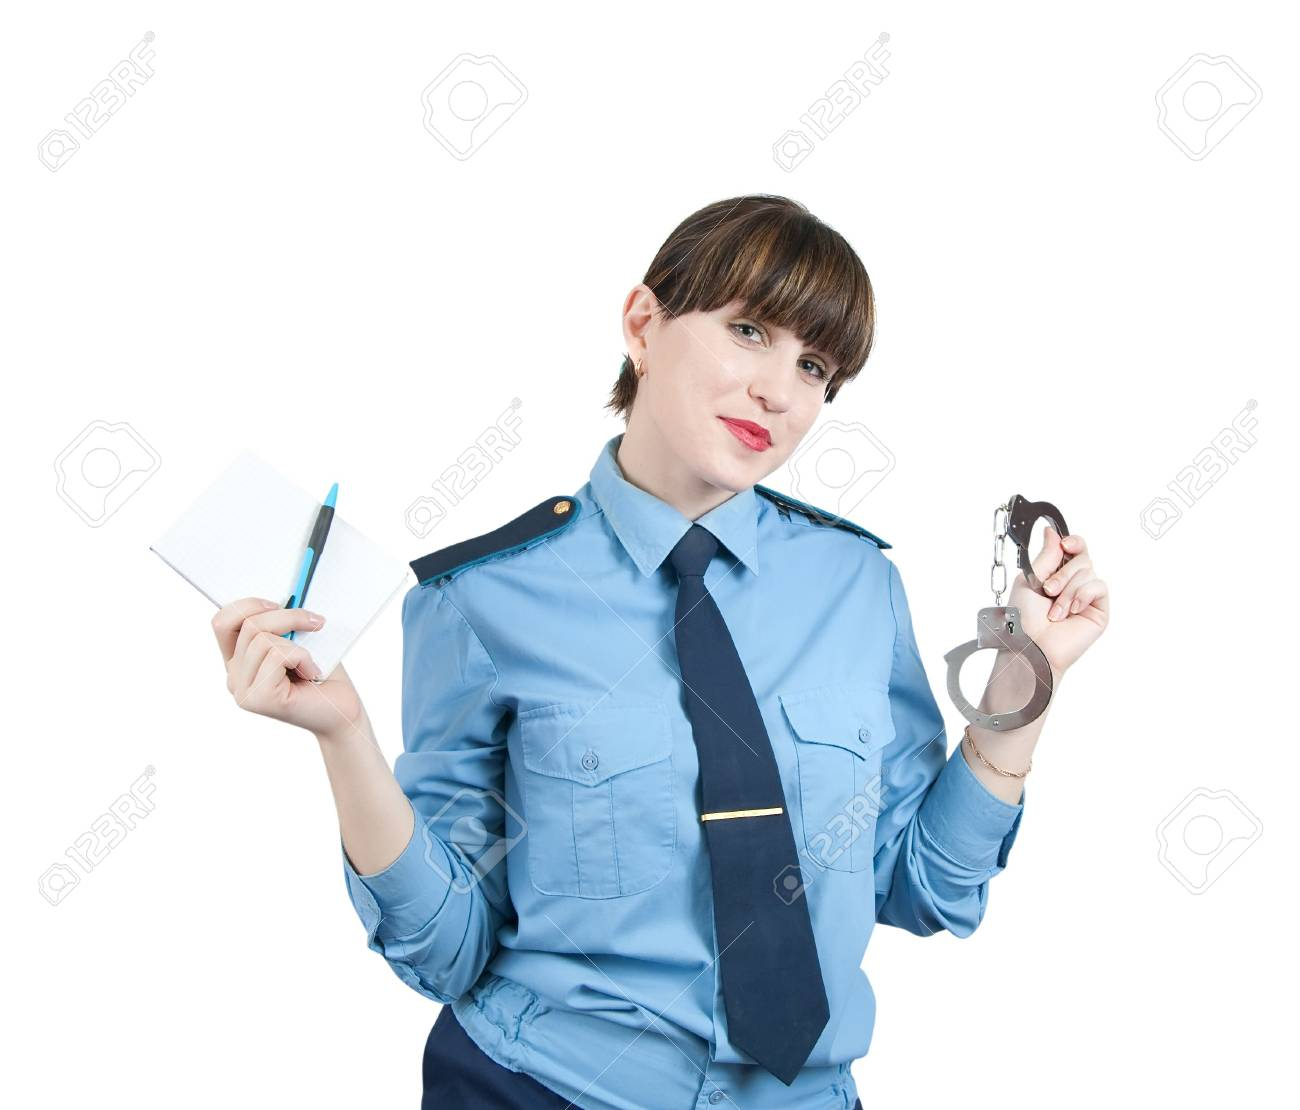 woman in uniform with manacles, isolated over white Stock Photo - 5979467